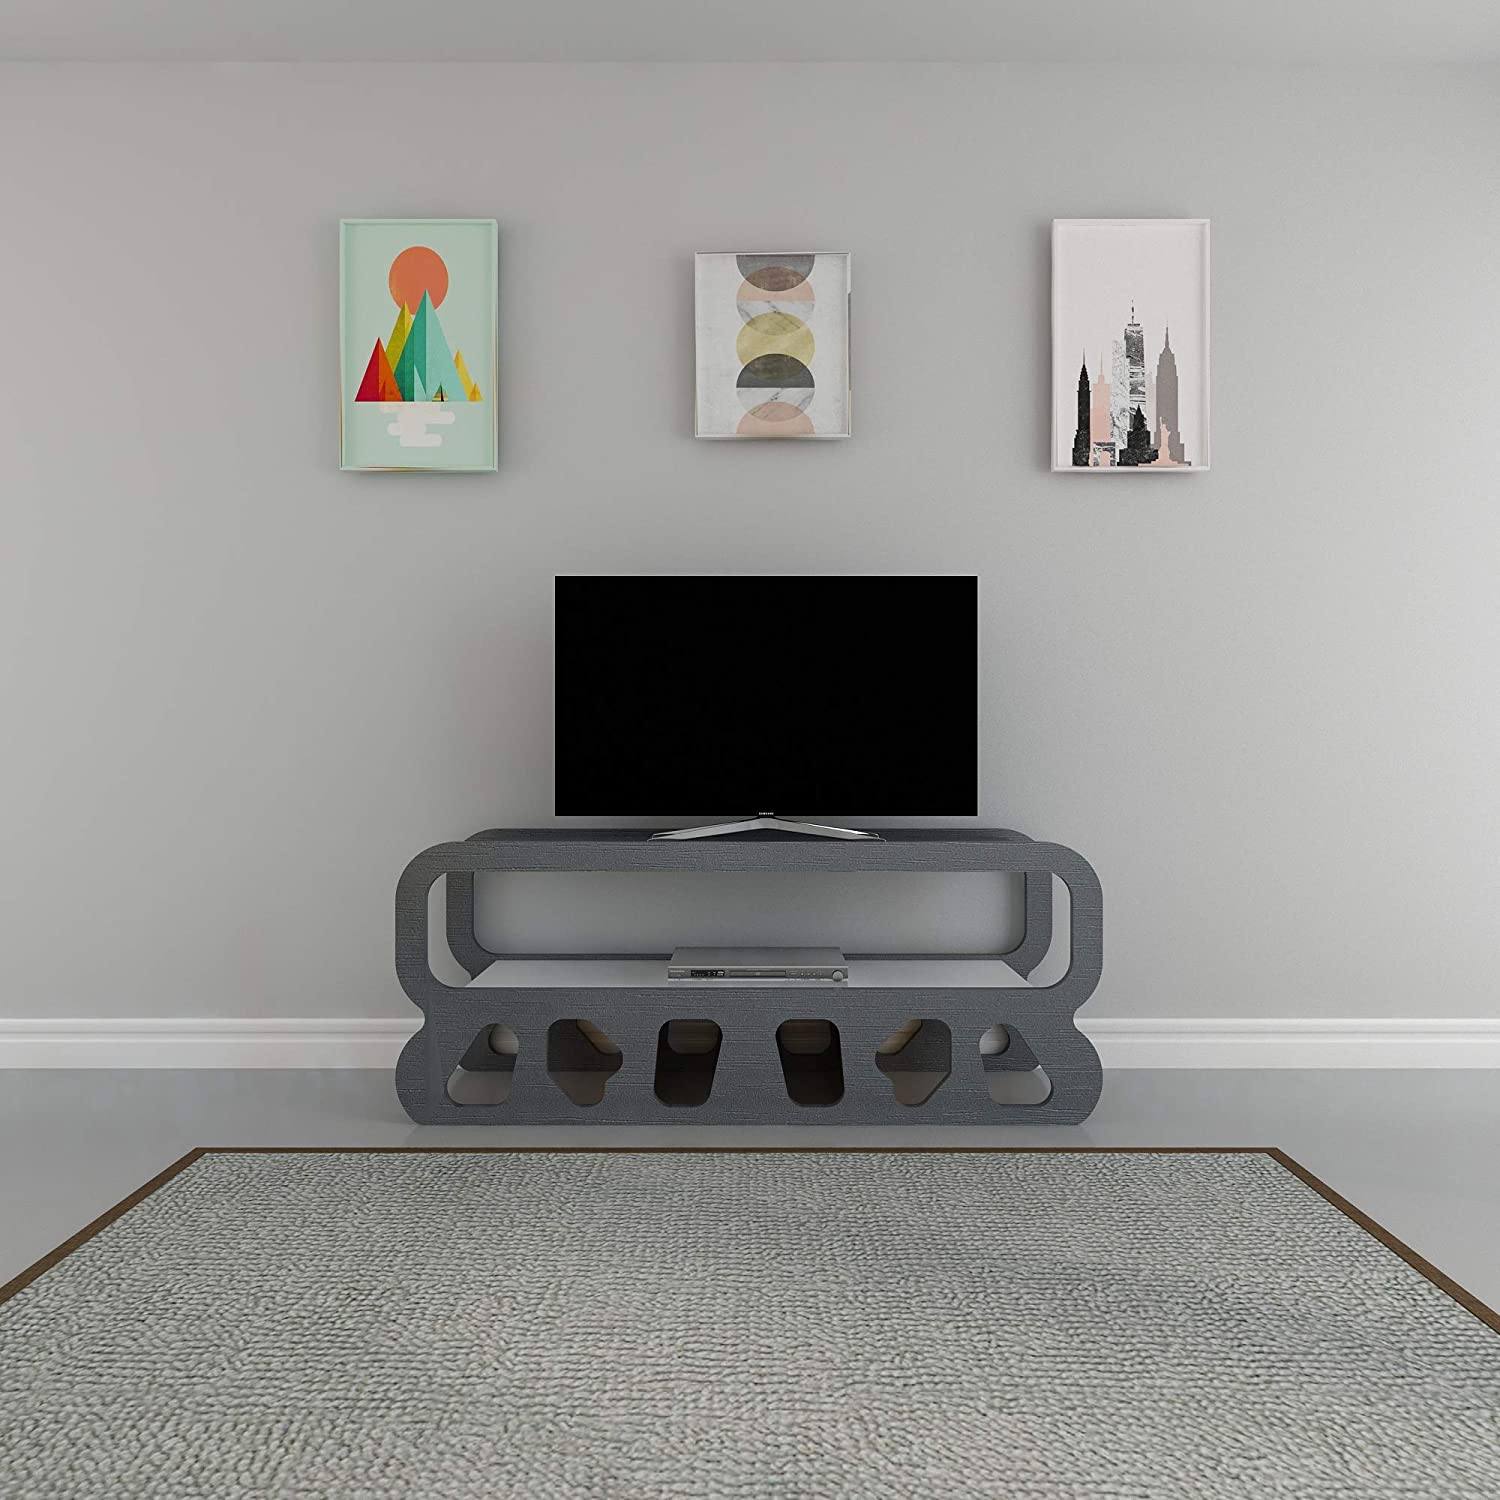 Decgoldtika Flintstones 47  TV Stand Media Console - Ideal for Small Living Room (Anthracite)